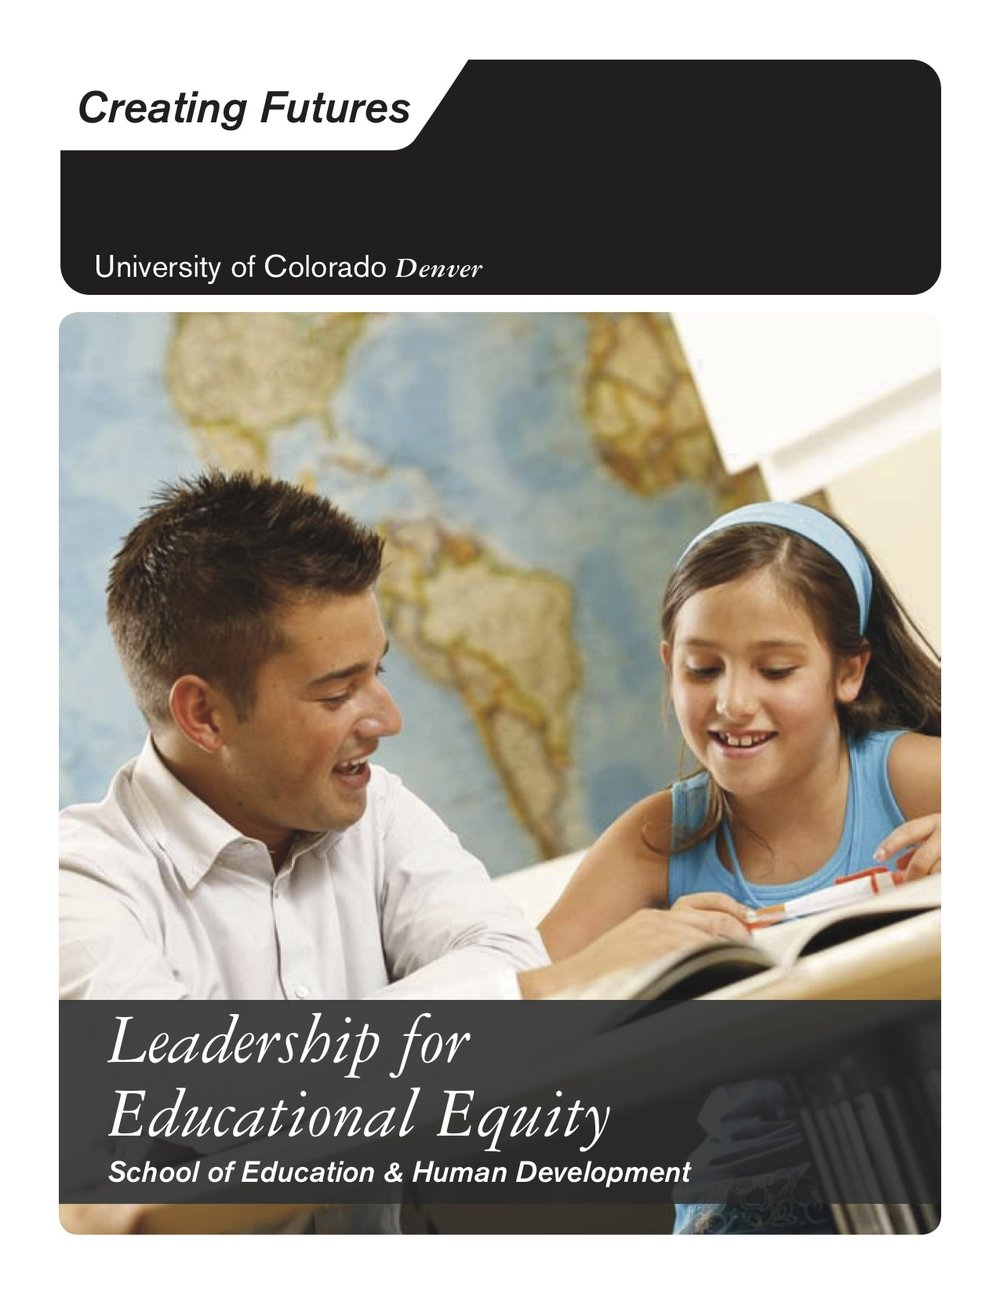 CU Denver Education